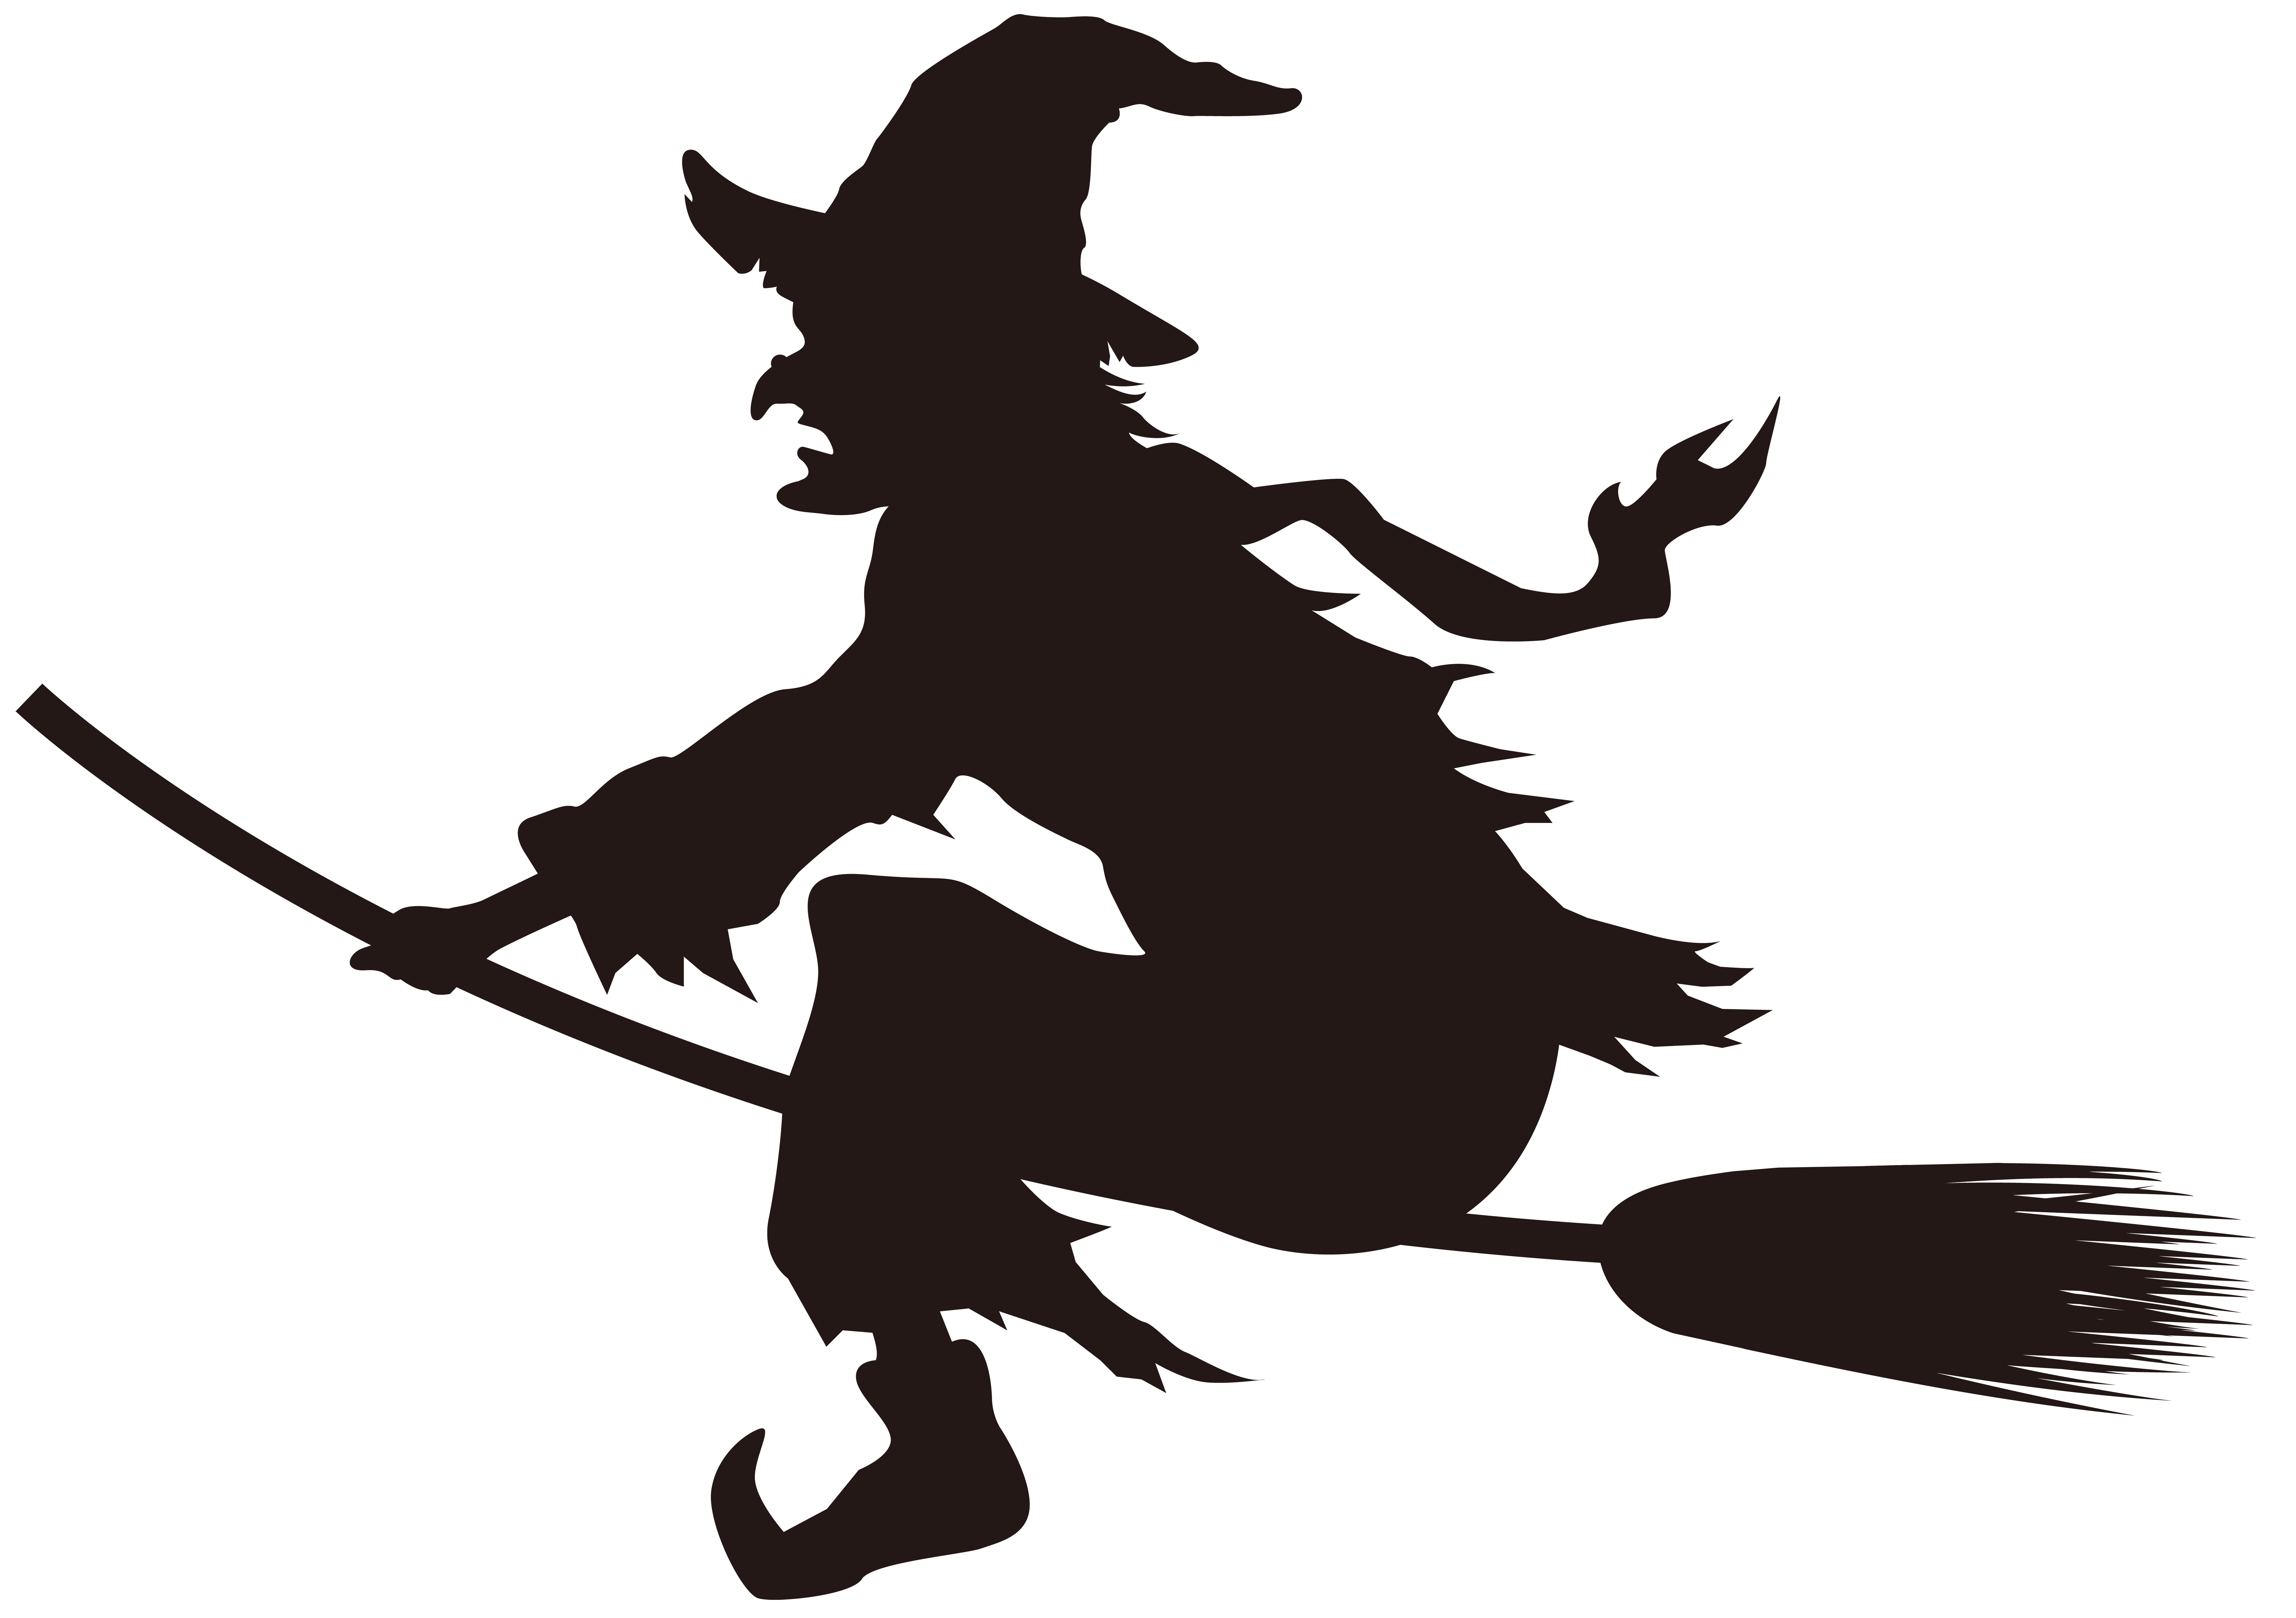 Halloween witch clipart black and white png freeuse stock Halloween Witch on Broom Silhouette PNG Clip Art Image | Gallery ... png freeuse stock